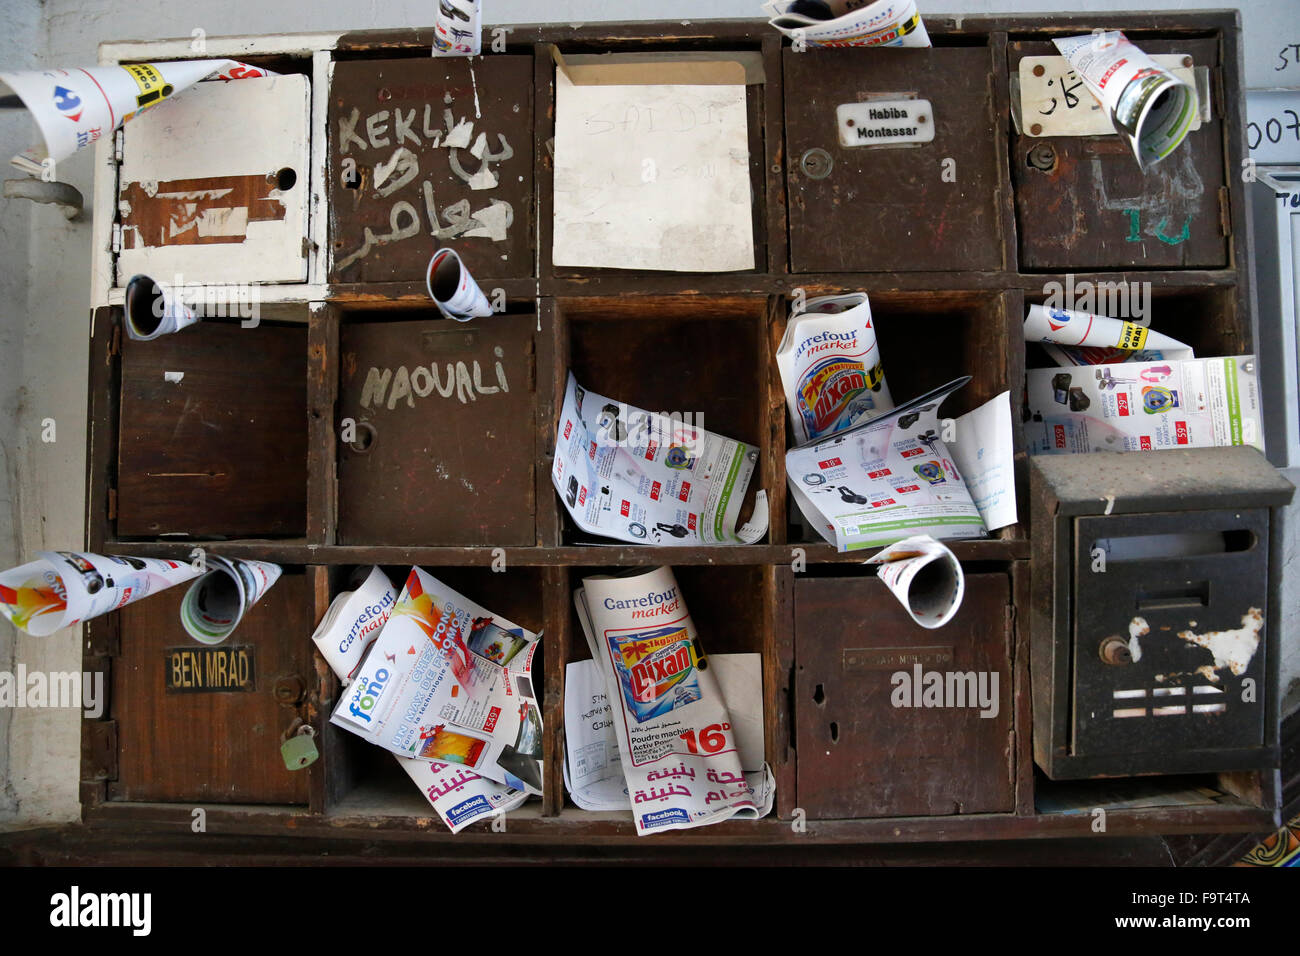 Mail boxes in a Tunis building - Stock Image